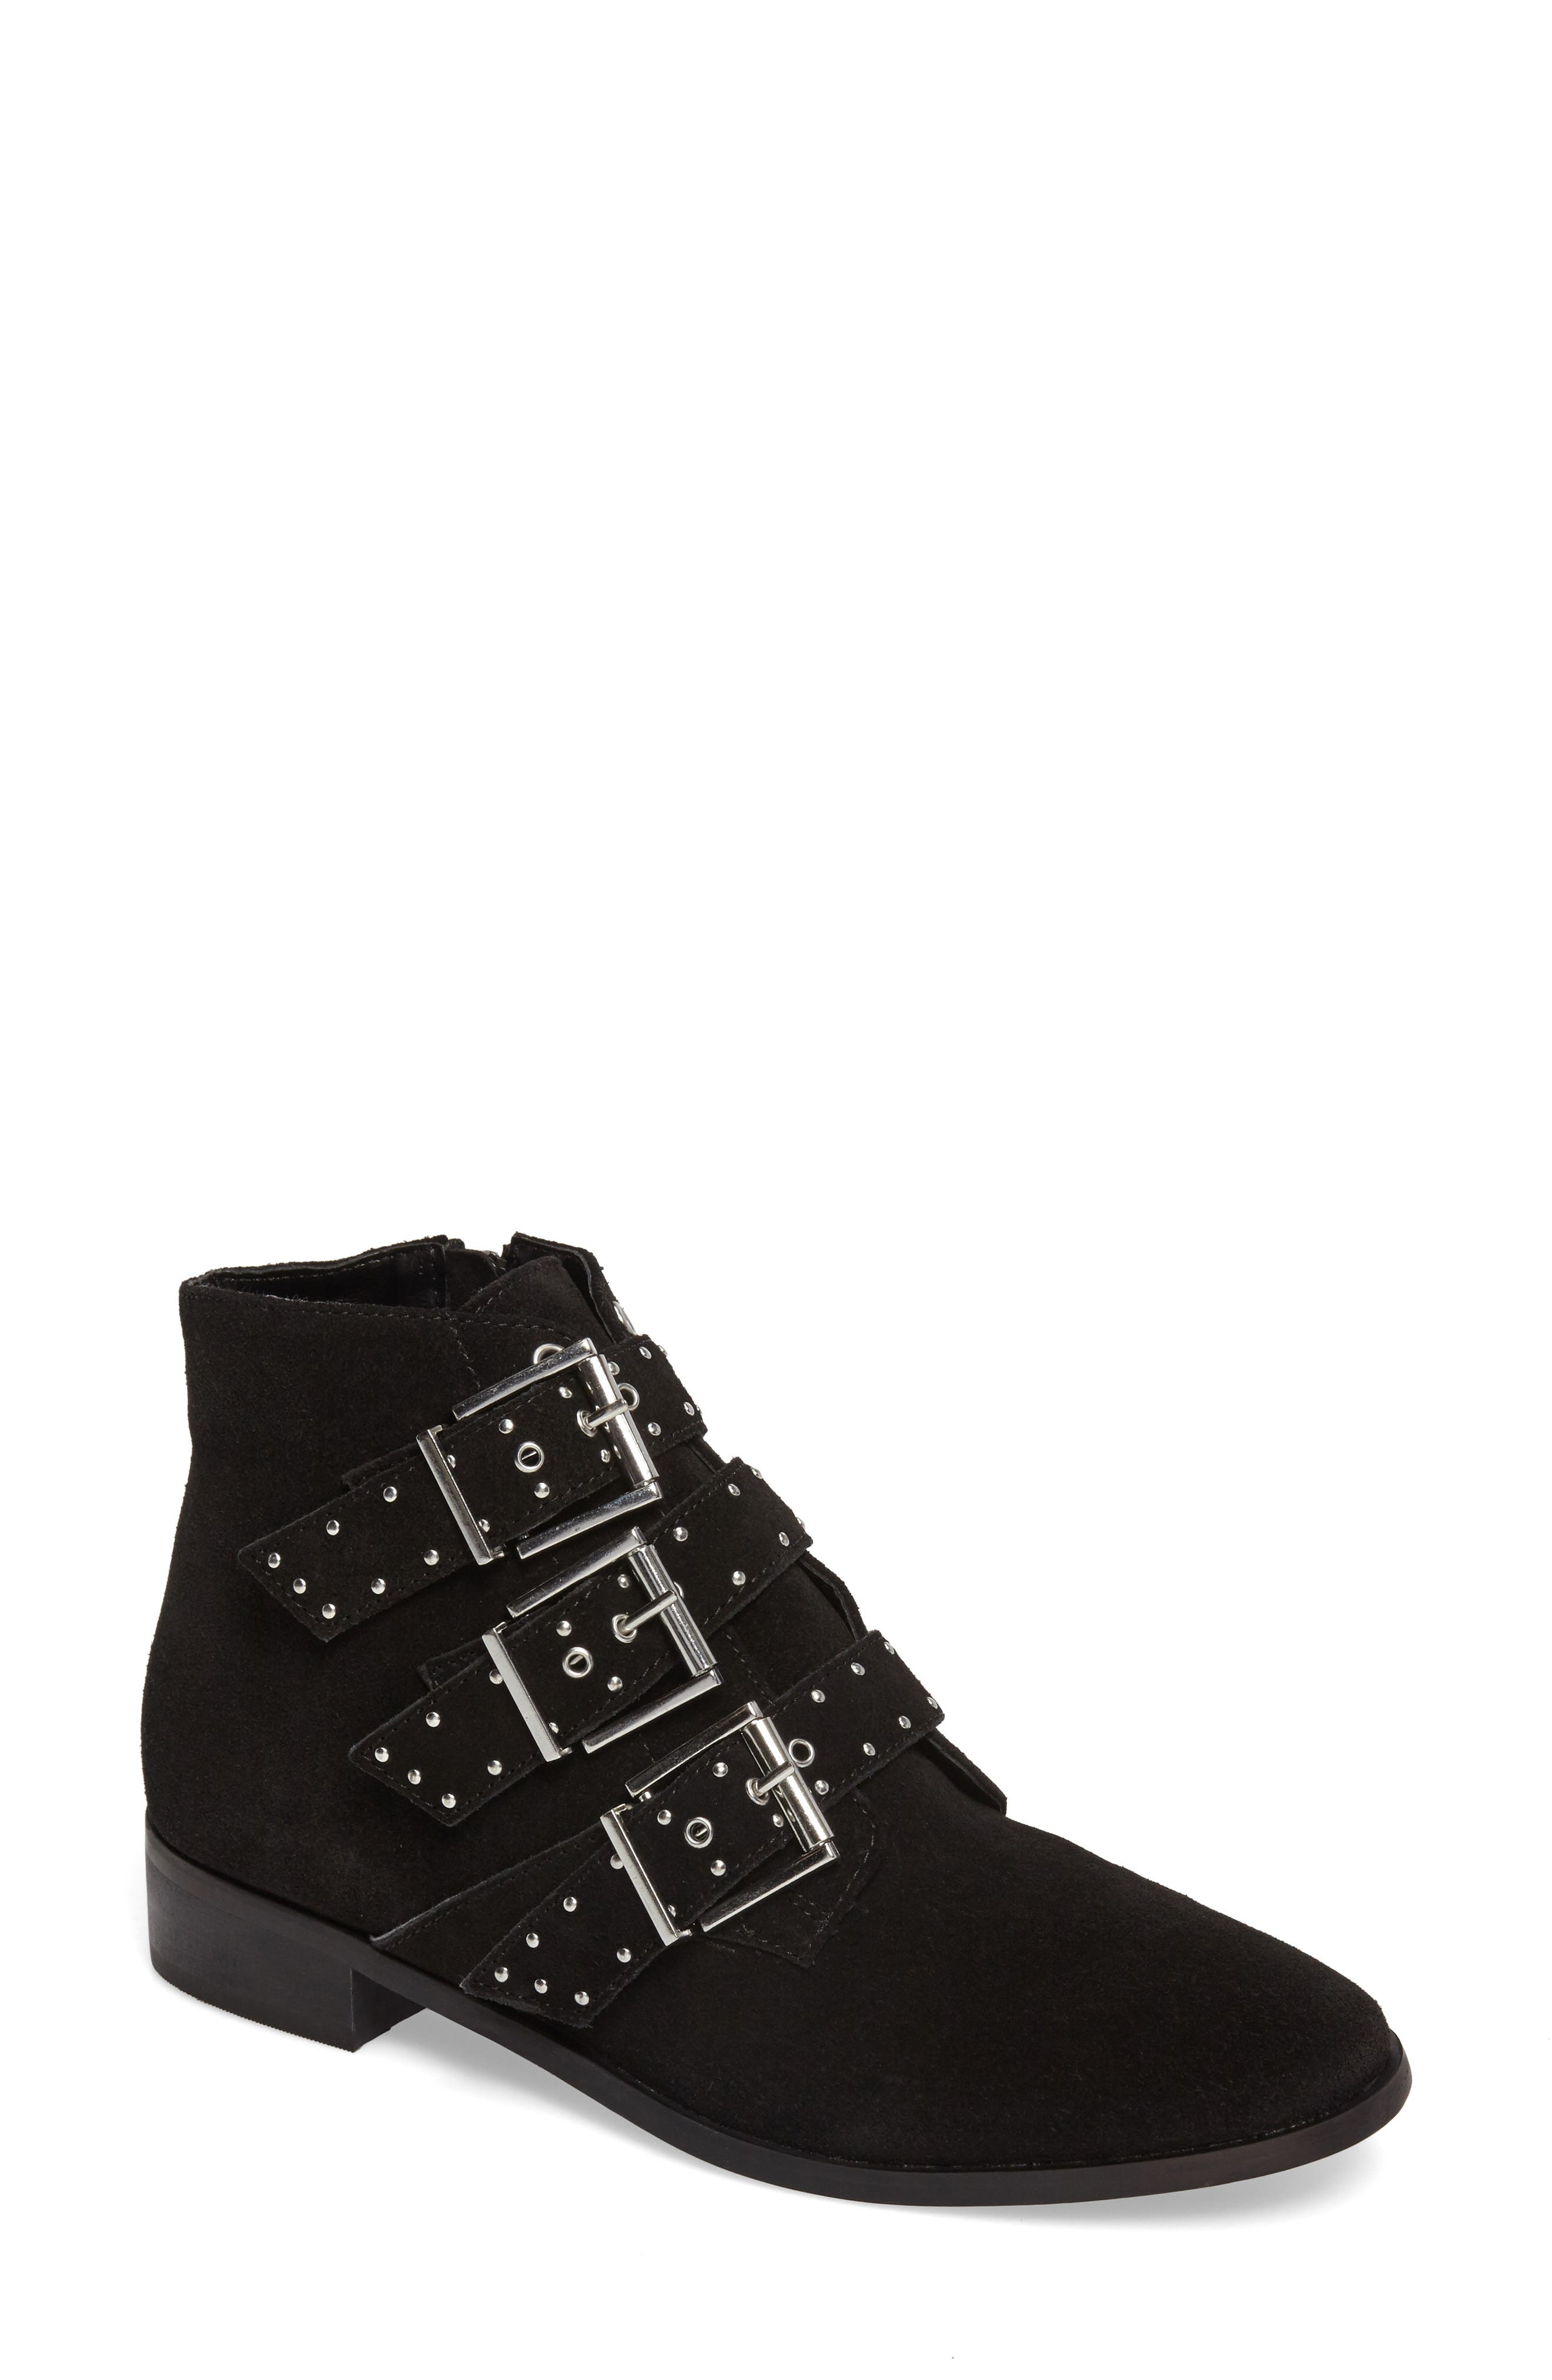 Krown Studded Bootie,                             Main thumbnail 1, color,